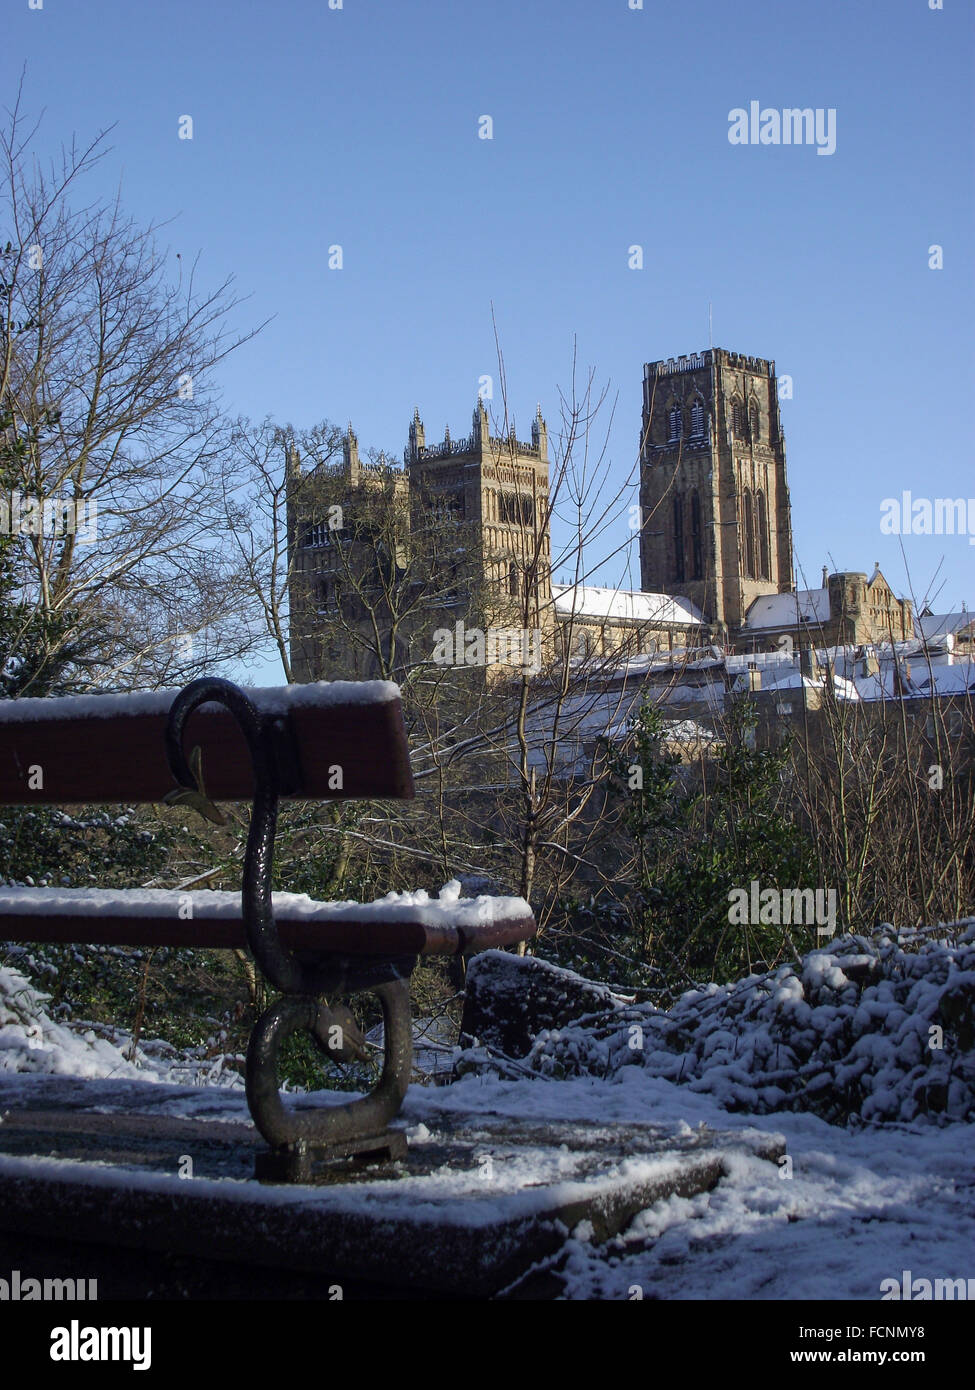 a-view-of-durham-cathedral-from-a-viewin